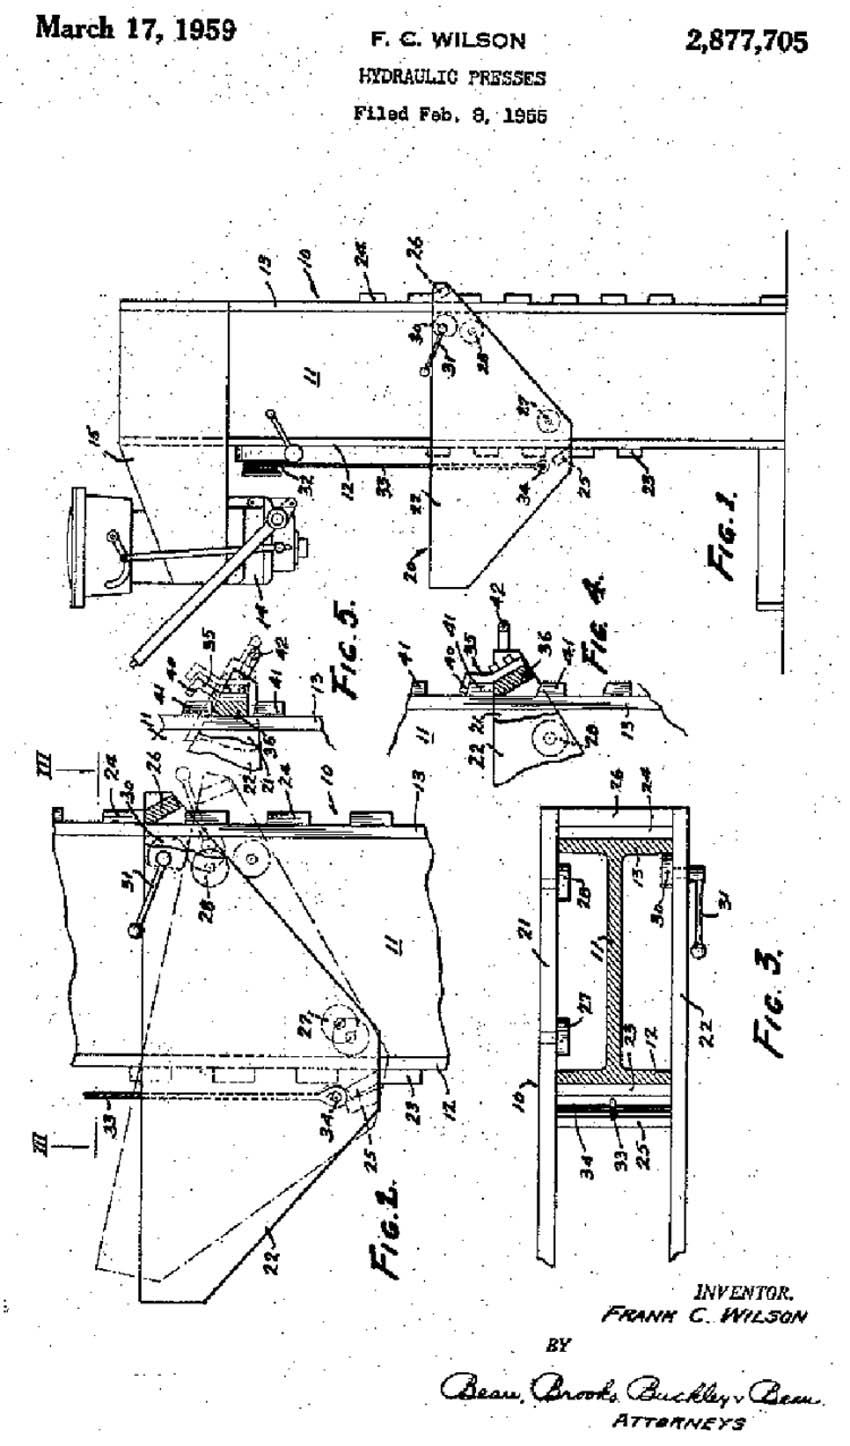 medium resolution of can t help with your decision but here is a 1959 patent drawing assigned to k r wilson for a hydraulic press the table tilts to move it up or down with